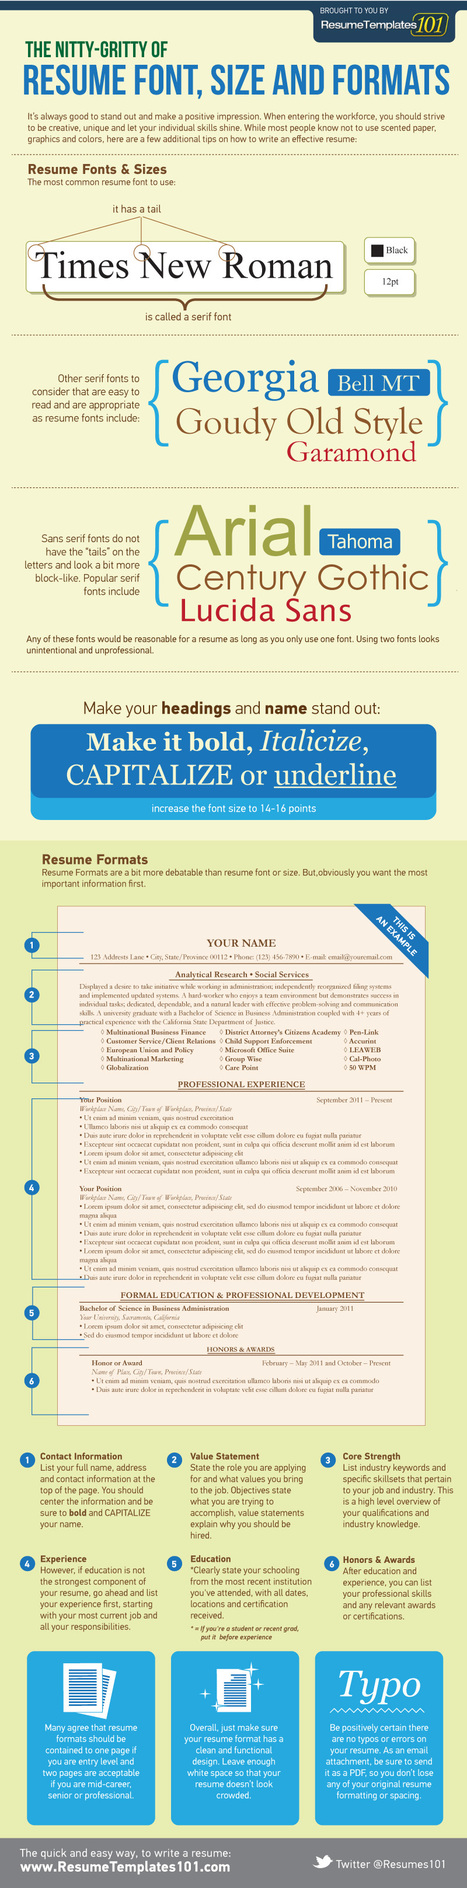 The Nitty-Gritty of Resume Font, Size and Formats [INFOGRAPHIC] | career development | Scoop.it